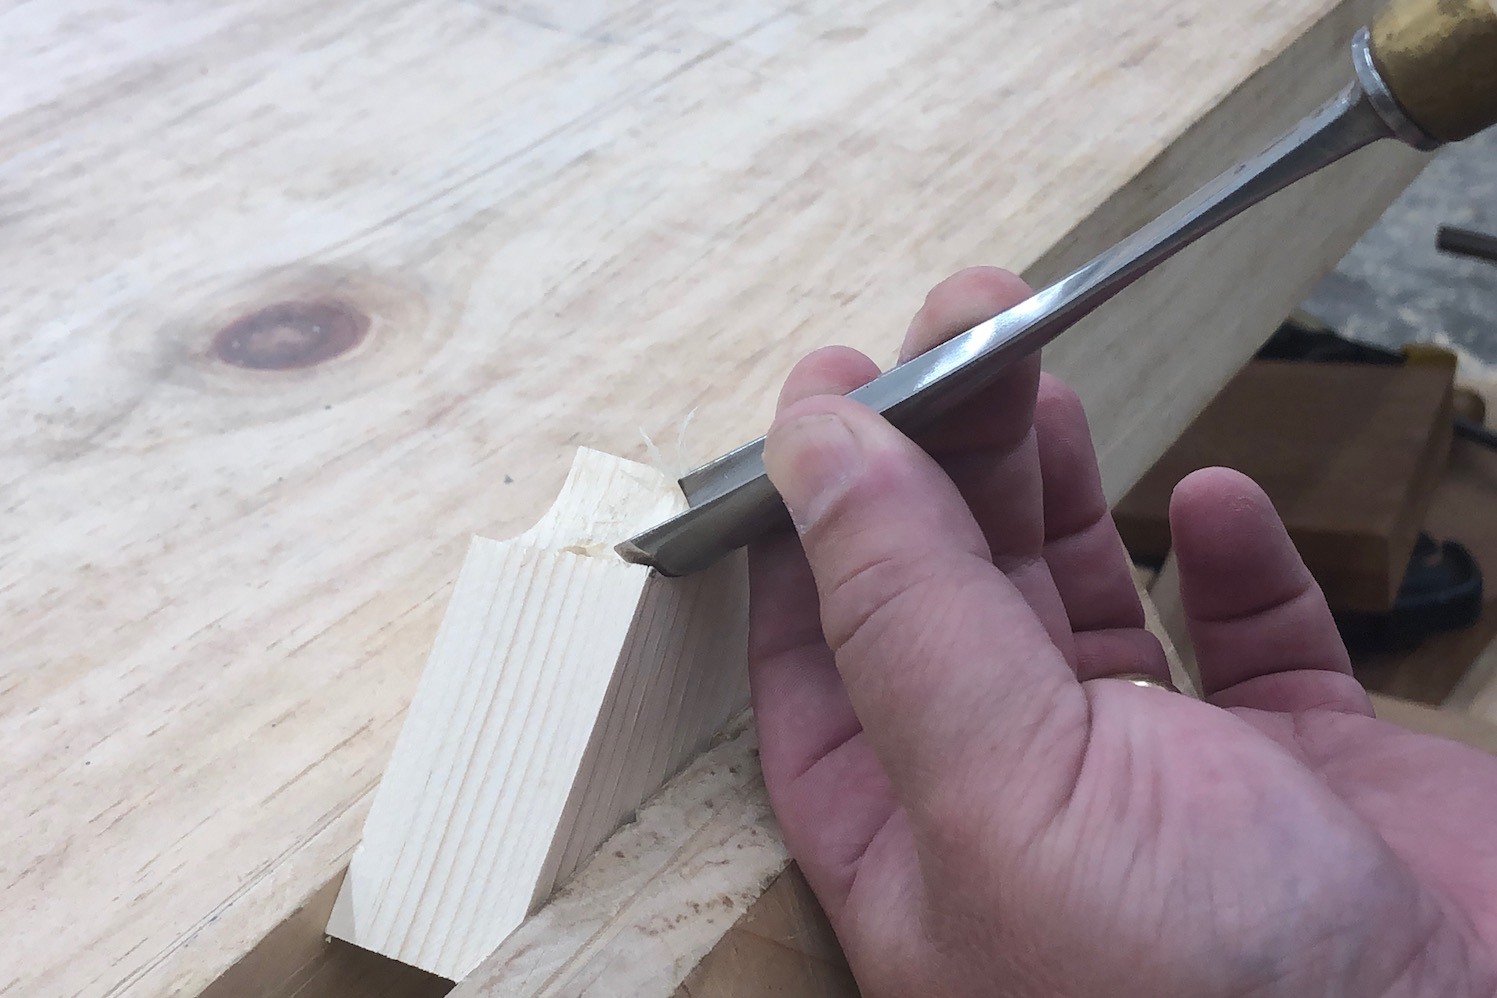 Out-cannel carving gouge